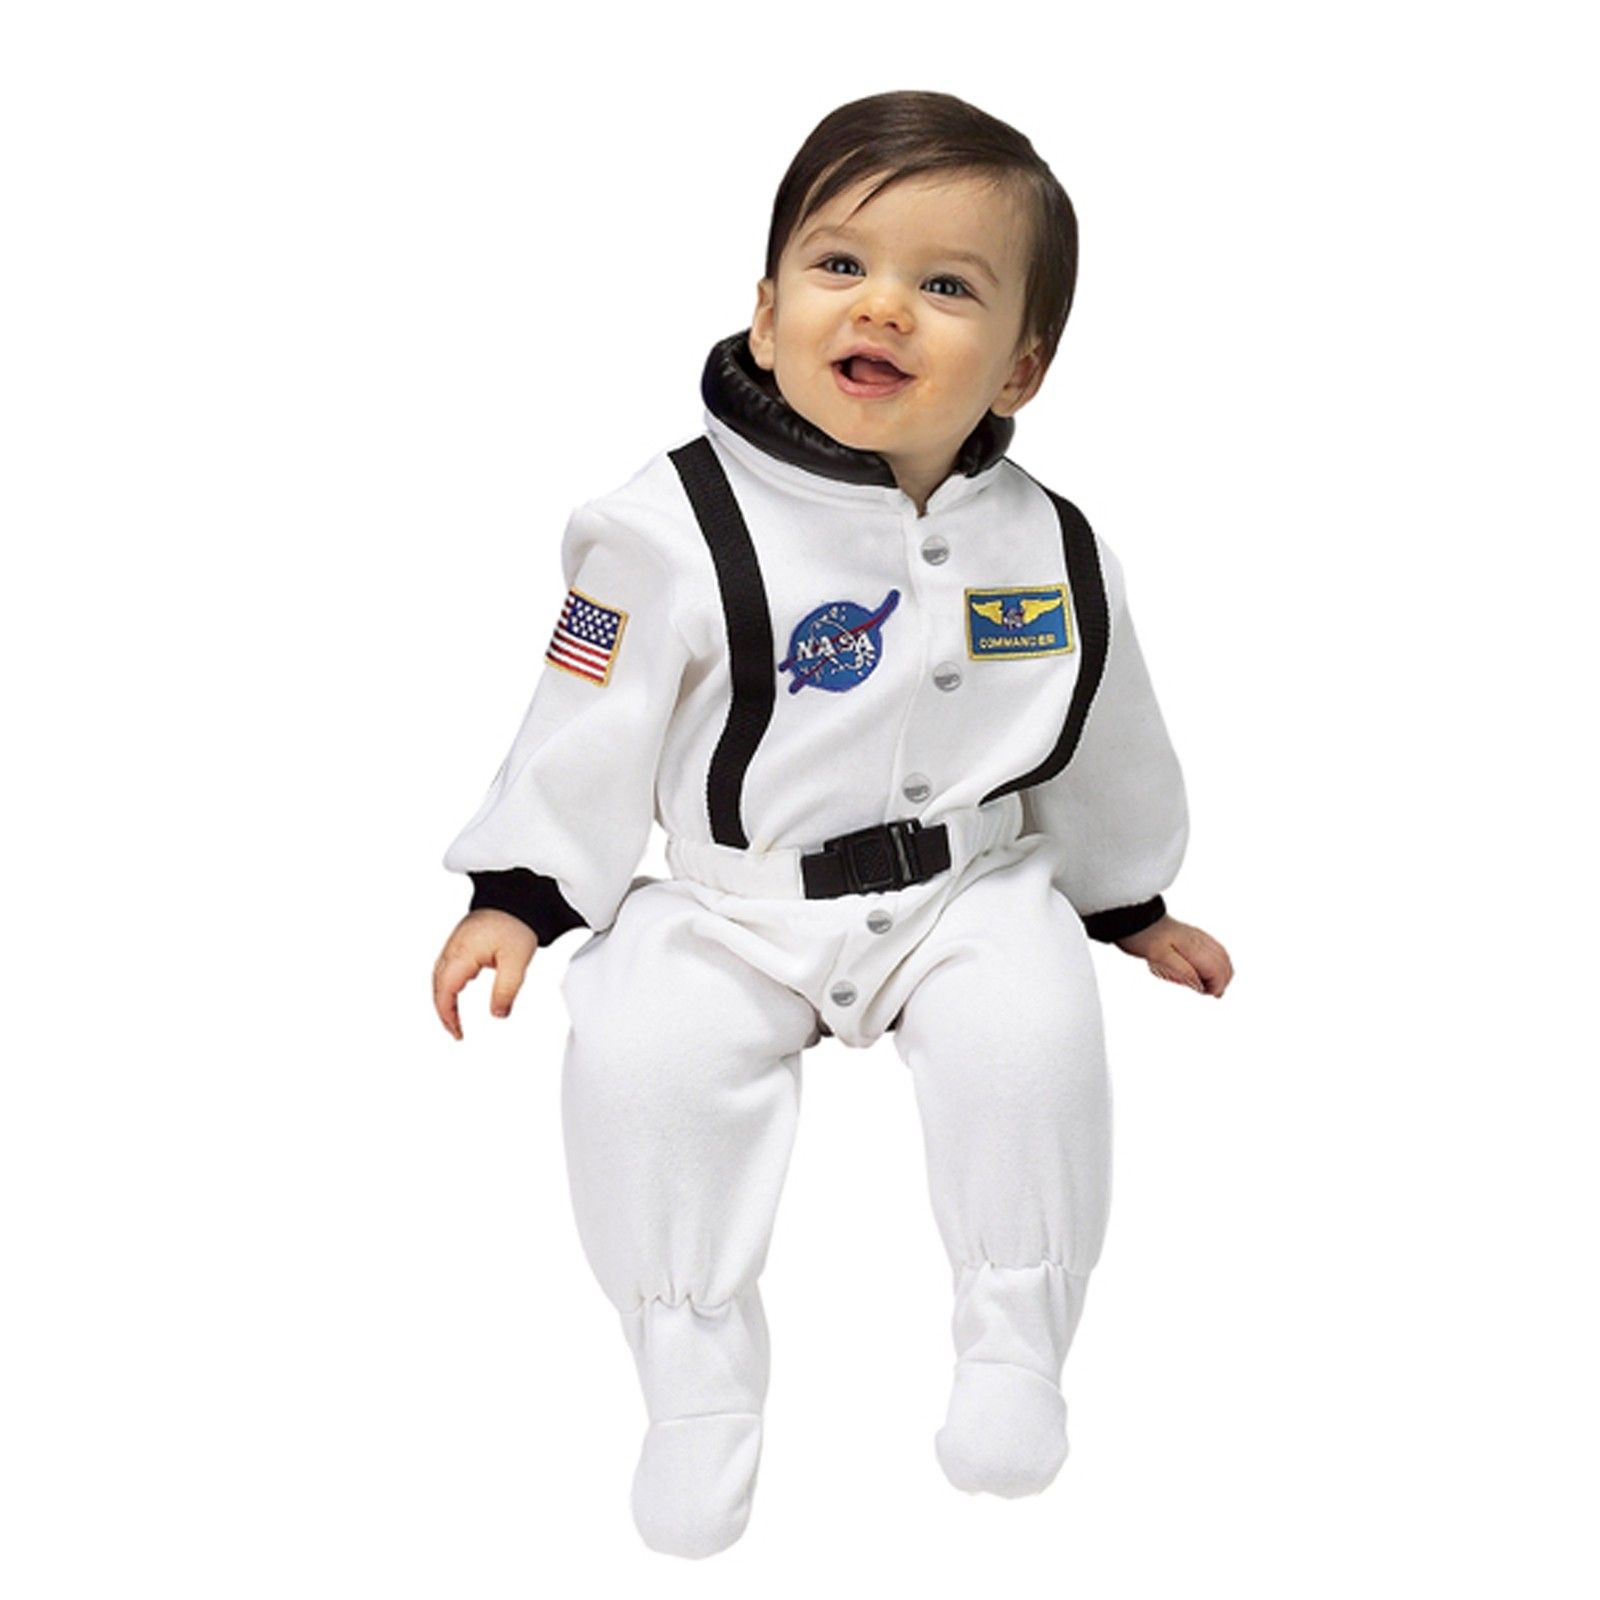 NASA Jr Astronaut Suit White Infant Costume